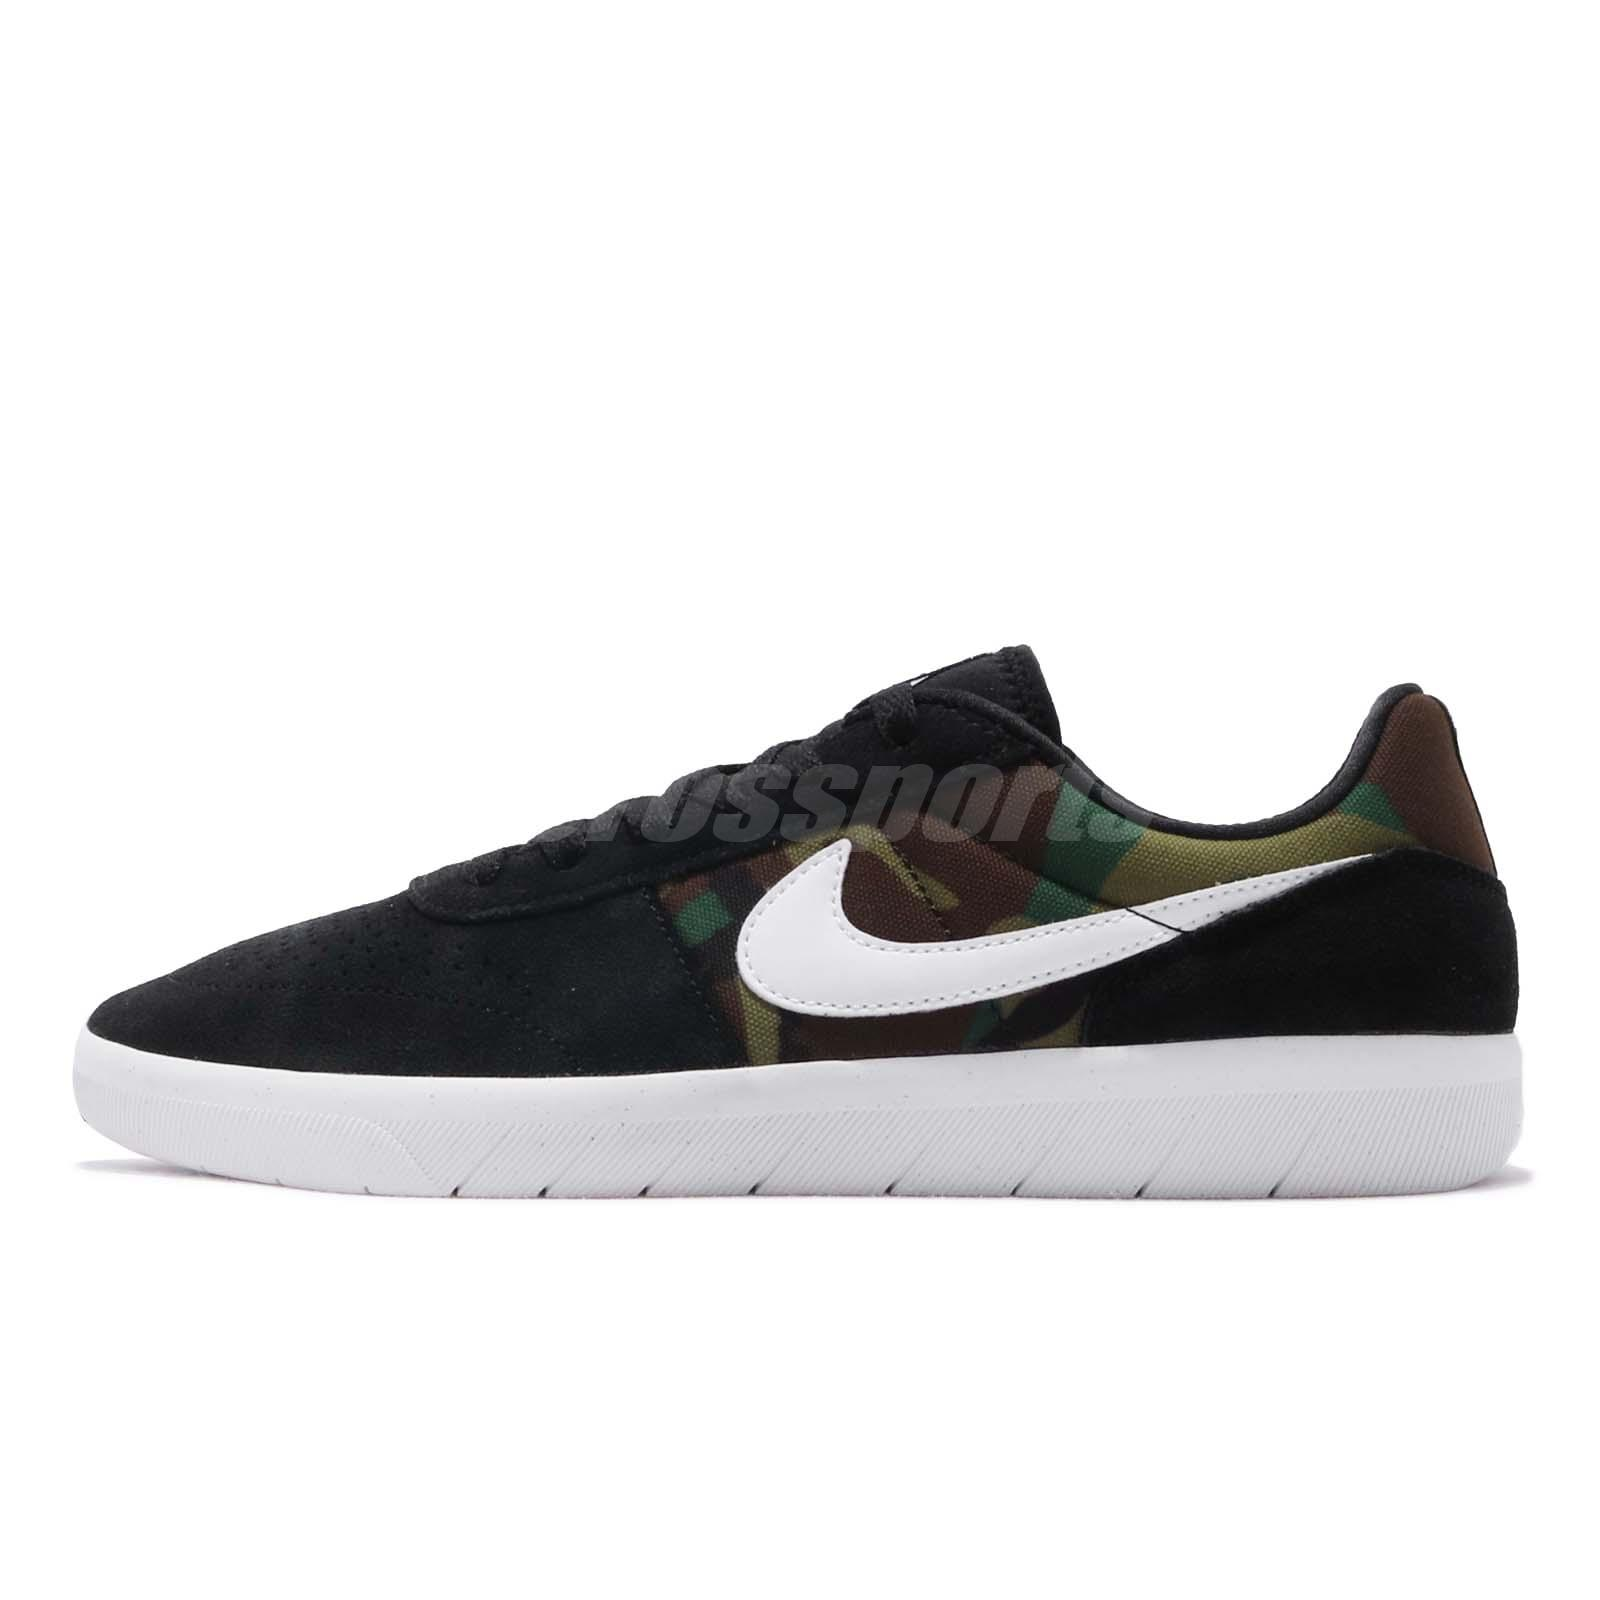 c68bafe8cc Details about Nike SB Team Classic Black White Green Camo Men Skate  Boarding Shoes AH3360-006